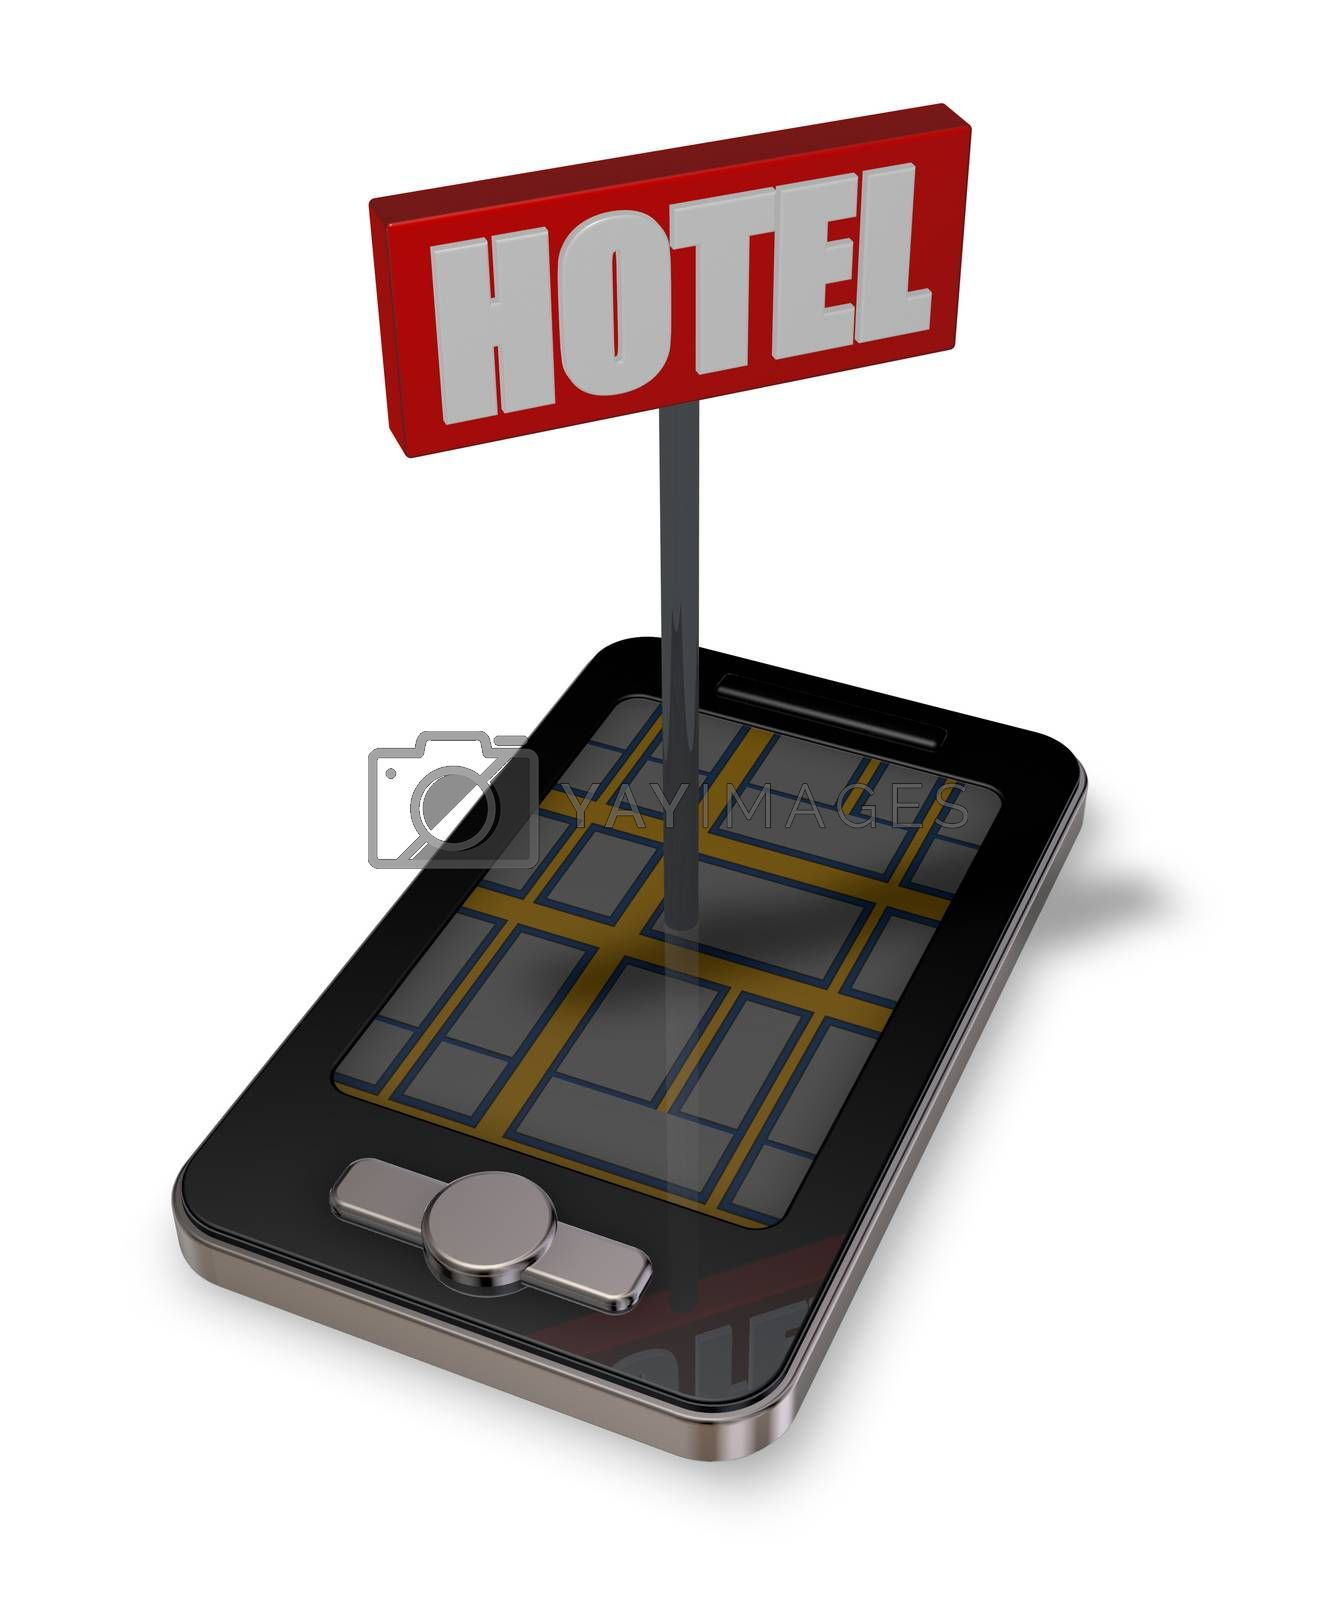 smartphone with hotel sign - 3d illustration